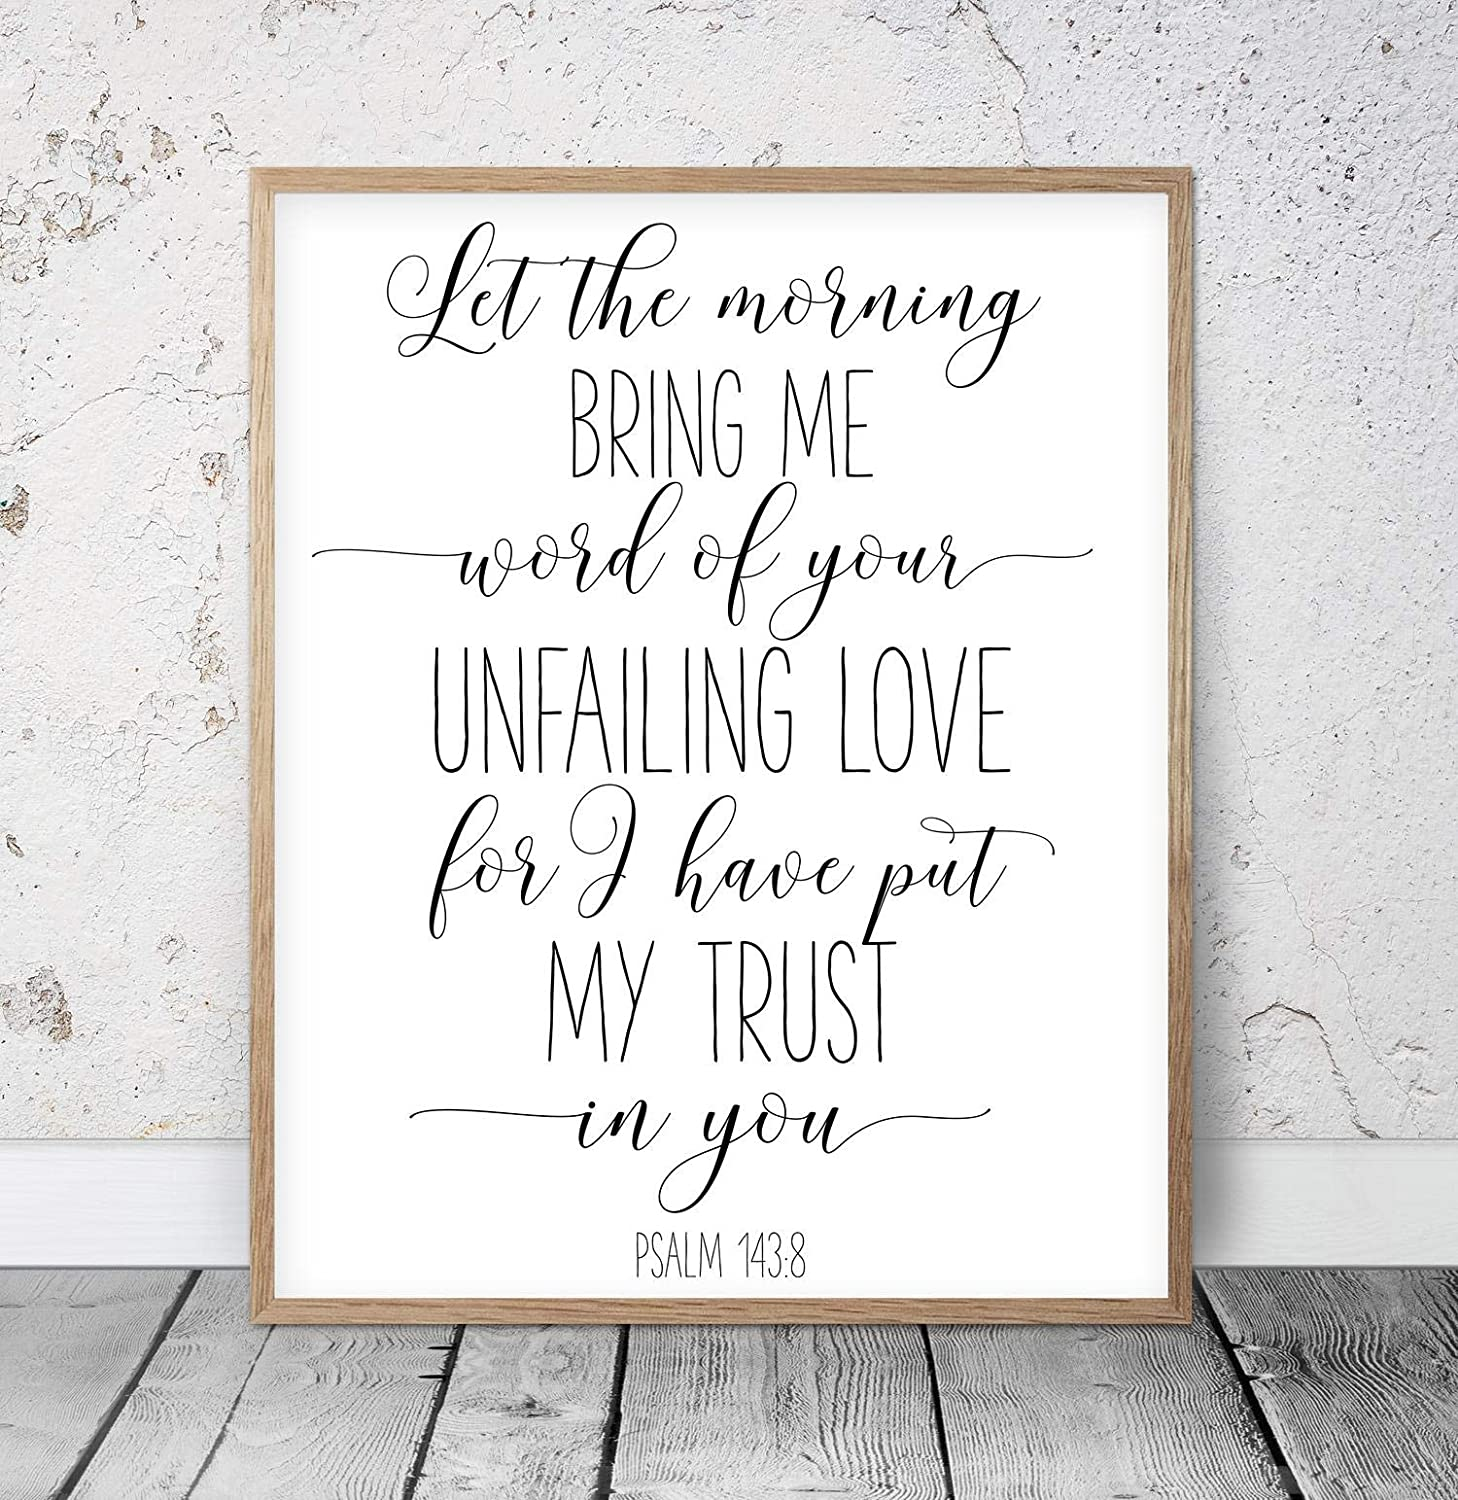 daoyiqi Wood Pallet Plaque with Frame Let The Morning Bring Me Word of Your Unfailing Psalm 143:8, Bible Verse Printable Wall Art, Christian Gifts, Nursery Bible Quotes Scripture Quote Sign